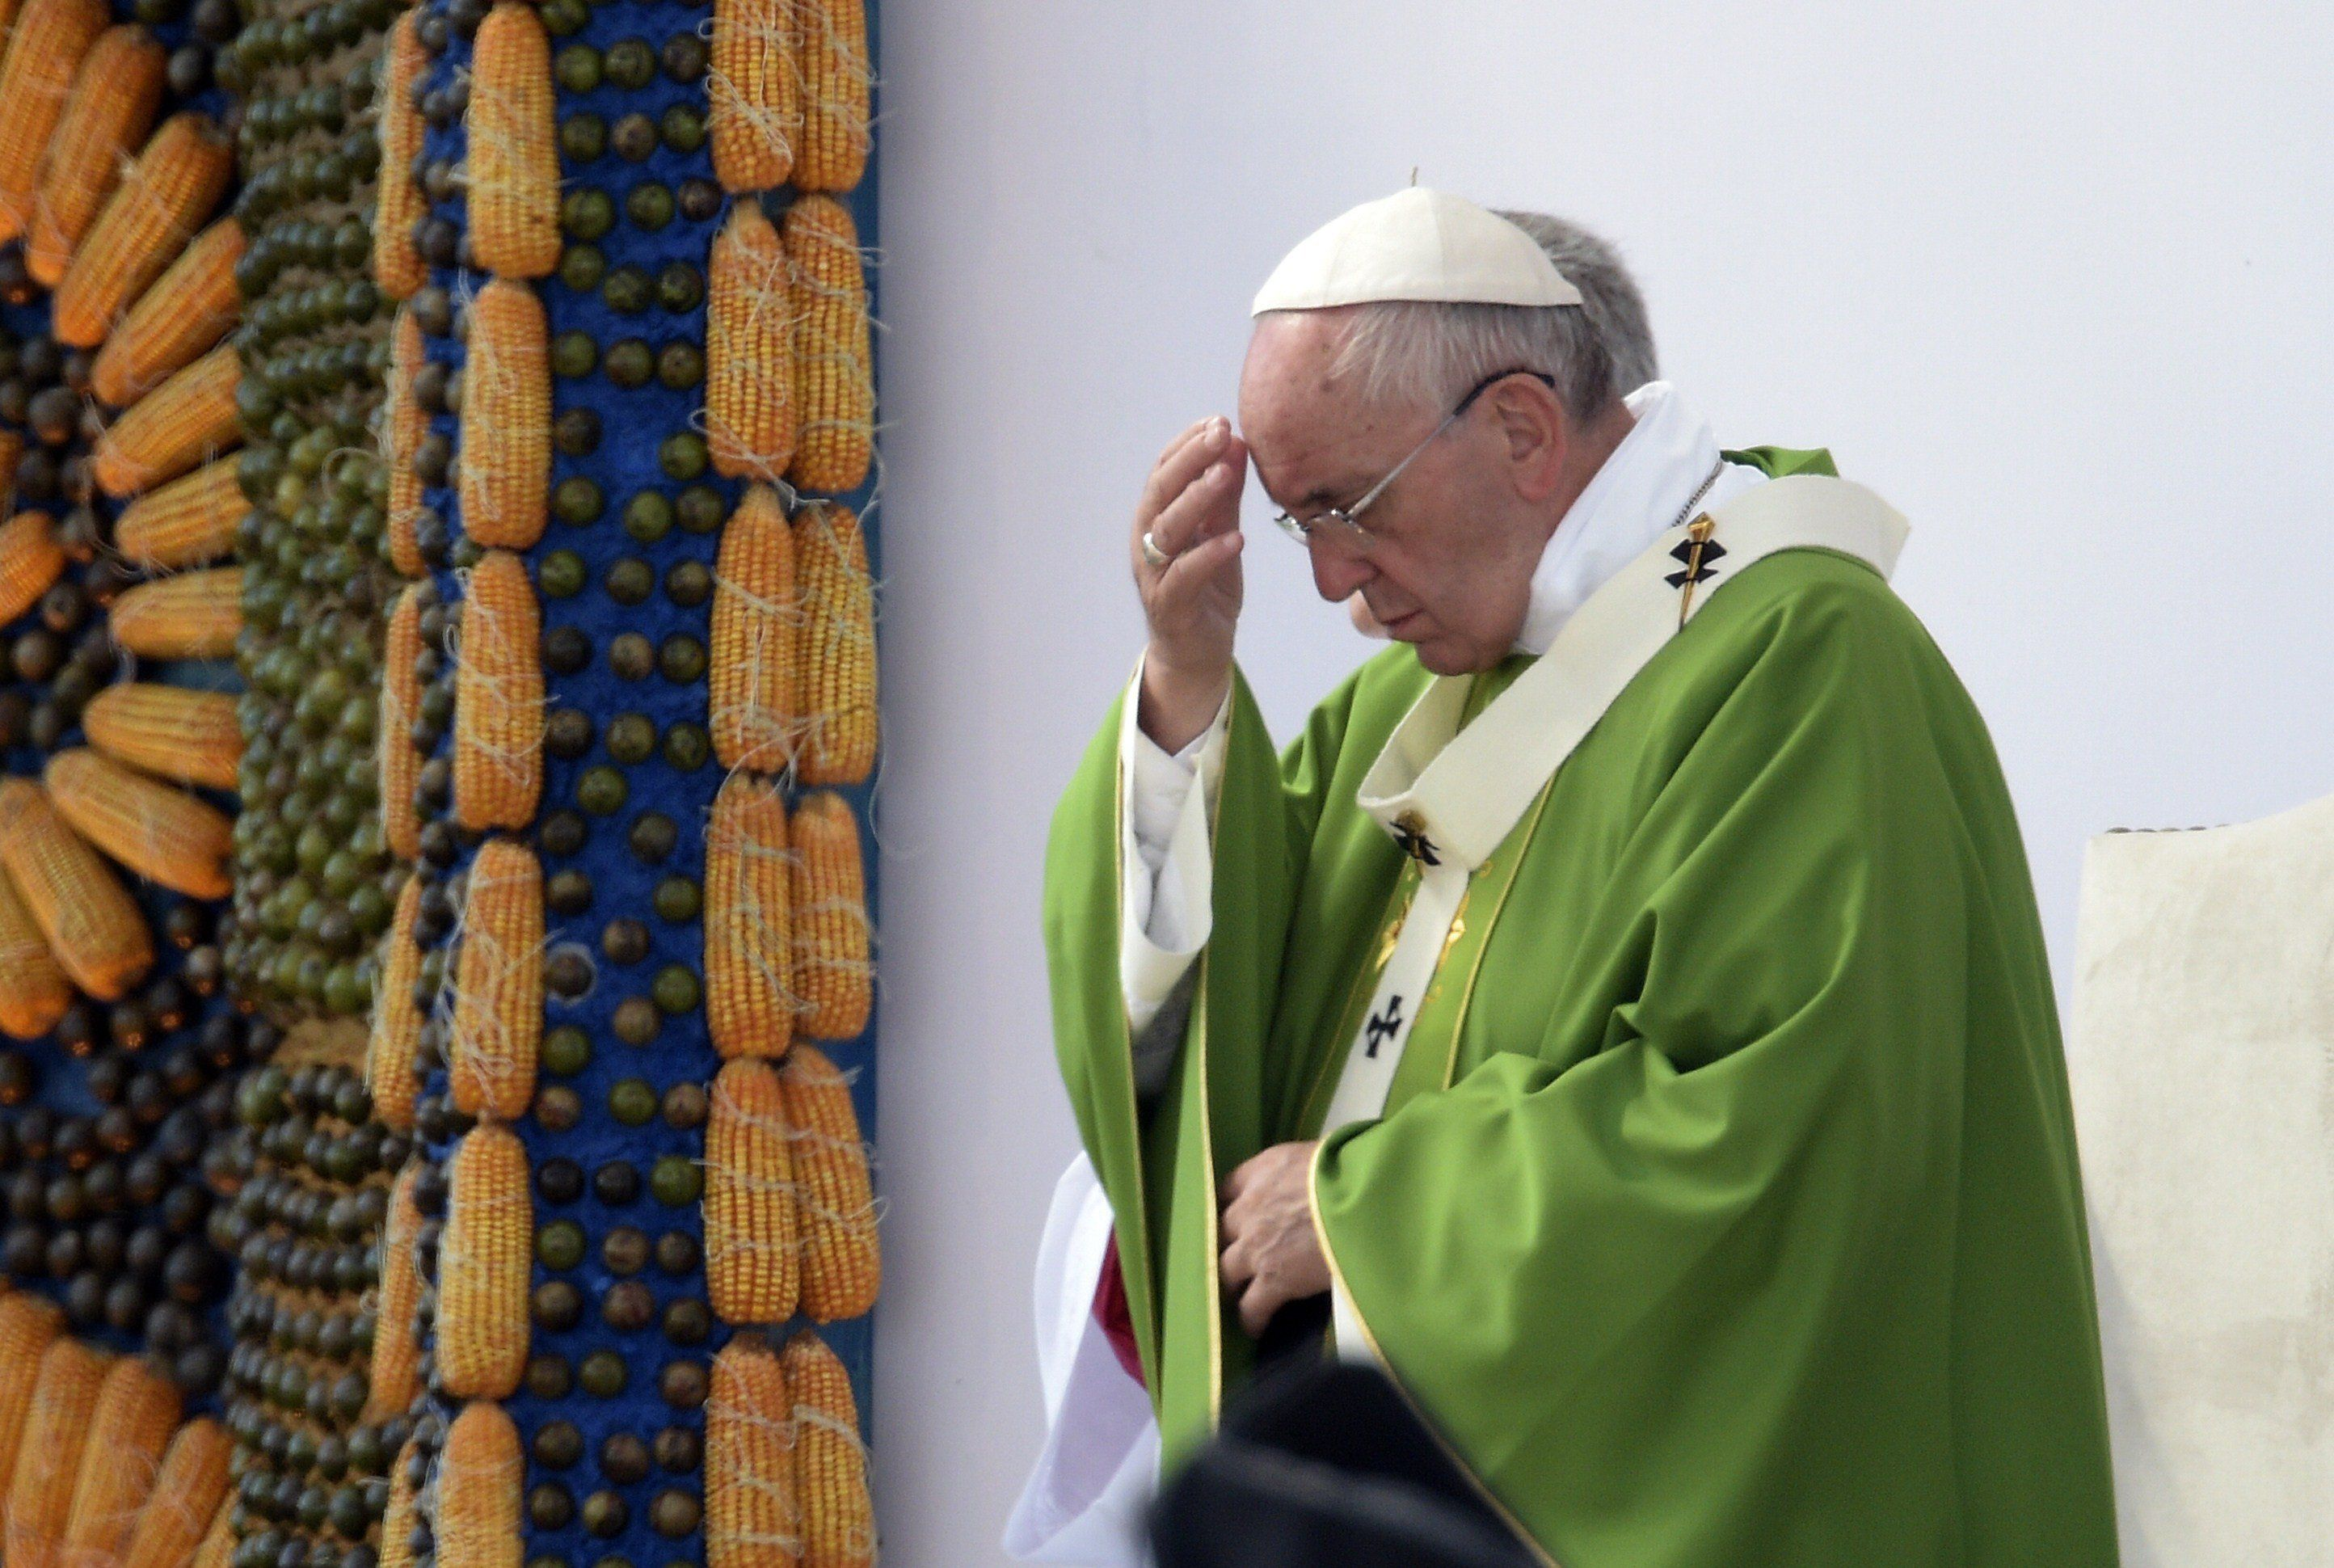 Pope Francis delivers a mass at Nu Guazu field in the outskirts of Asuncion, Paraguay on July 12, 2015. The Pope finishes Sunday his Latin American tour. AFP PHOTO / Juan Mabromata        (Photo credit should read JUAN MABROMATA/AFP/Getty Images)